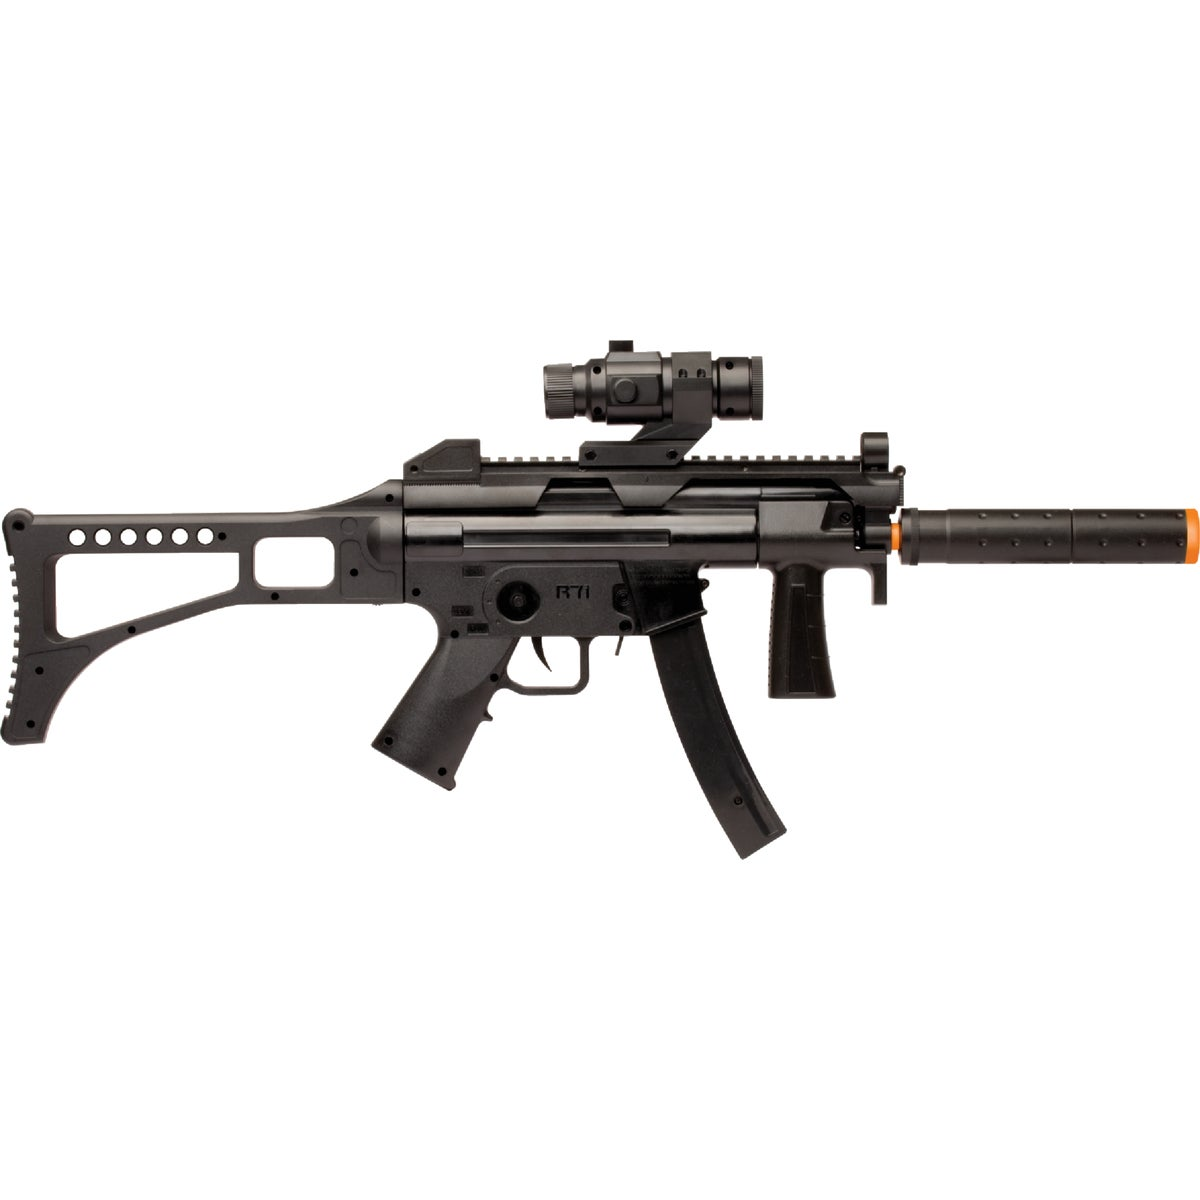 ELECTRONIC AIRSOFT RIFLE - TACR71B by Crosman Corporation